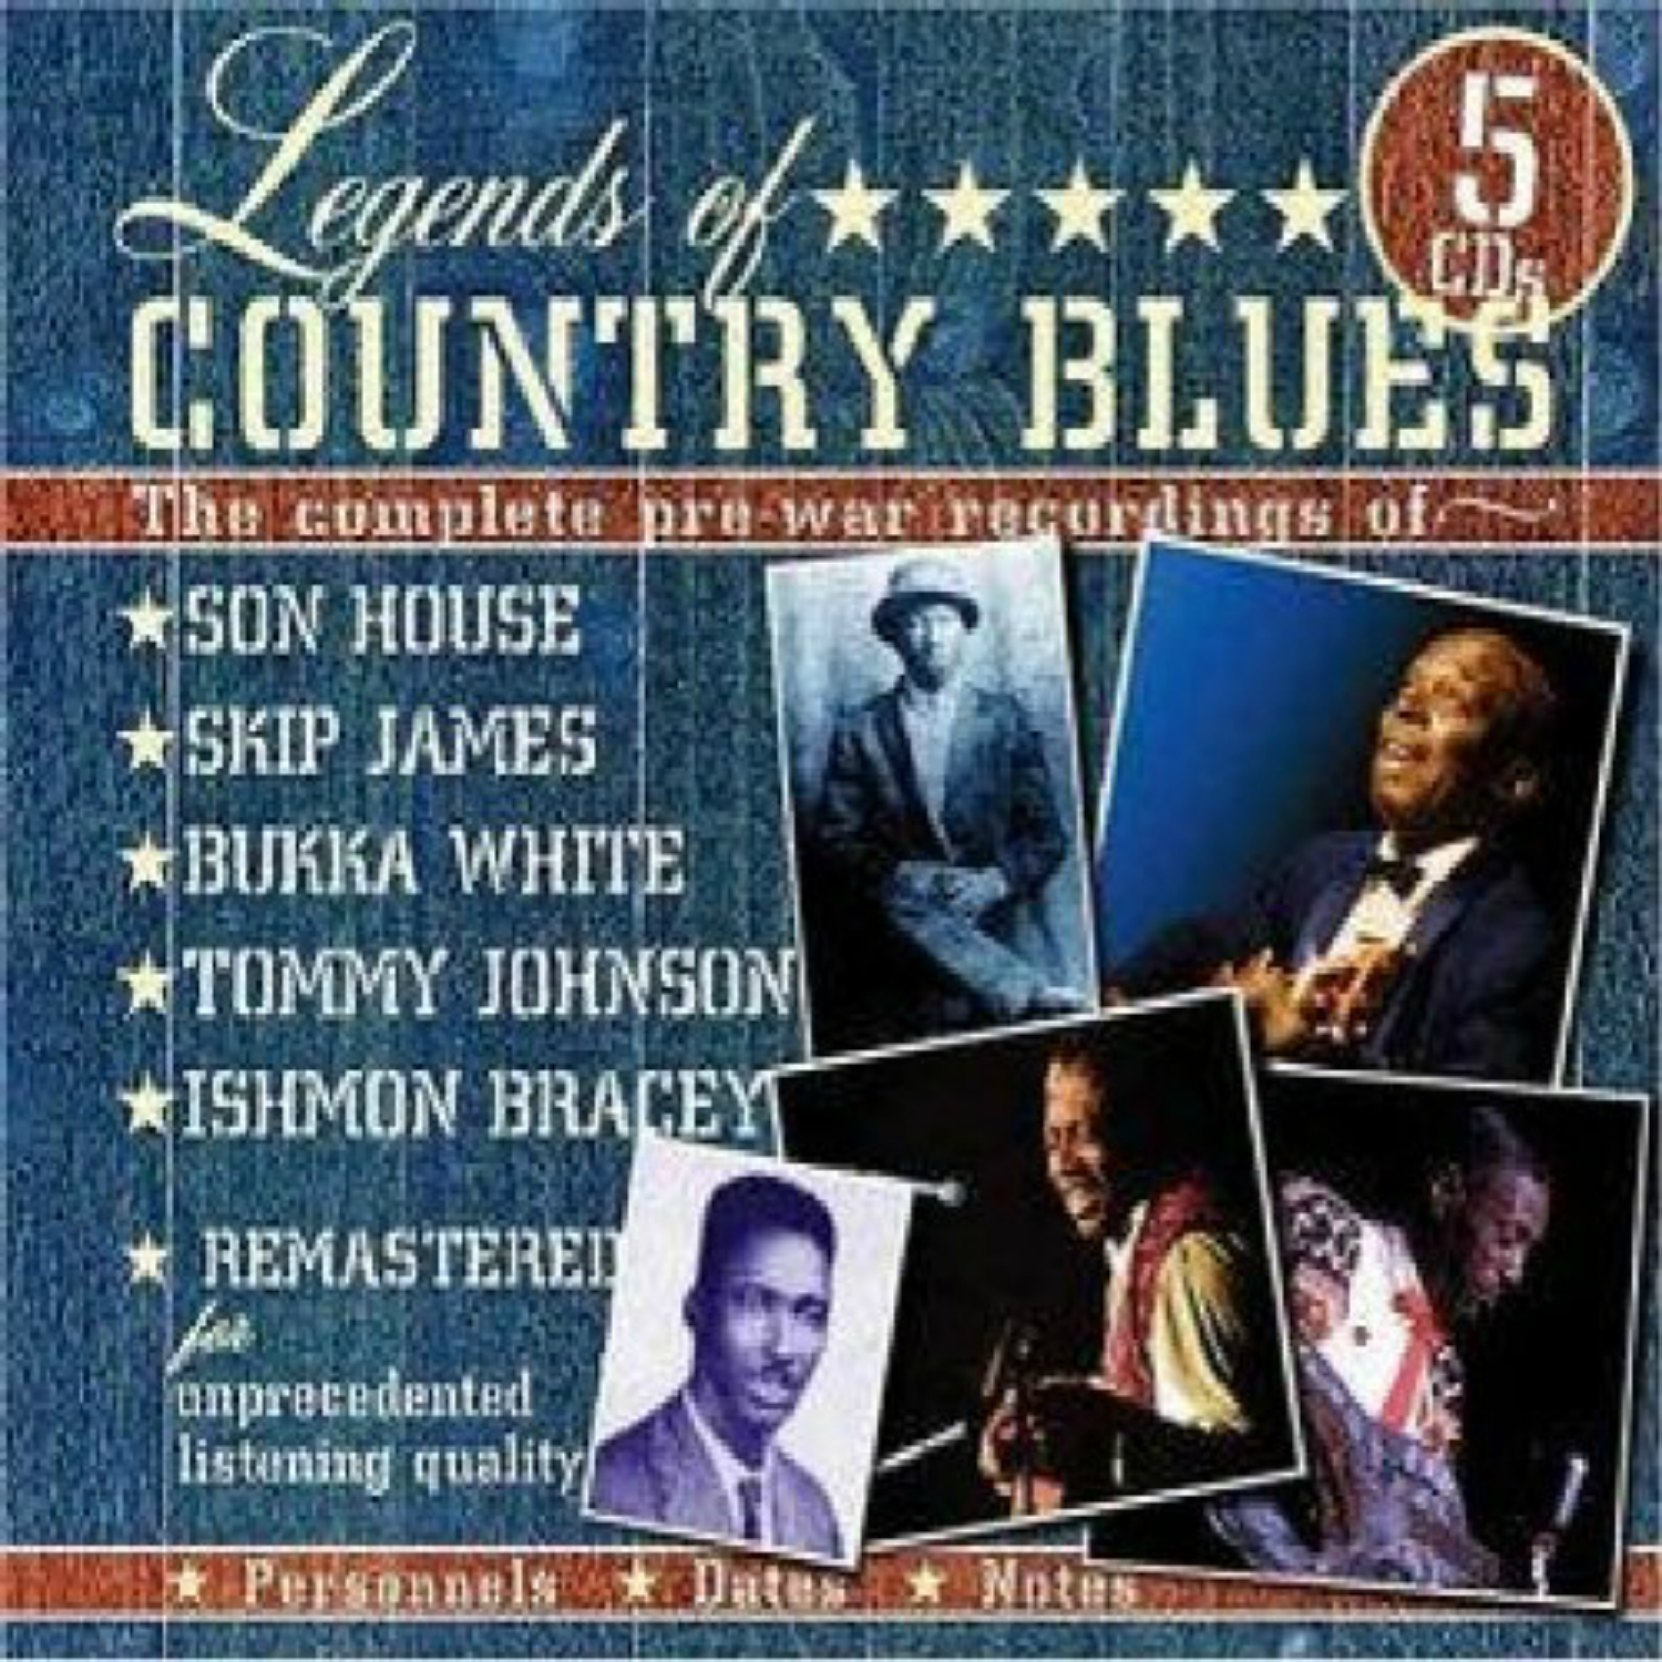 Legends of Country Blues, CD cover